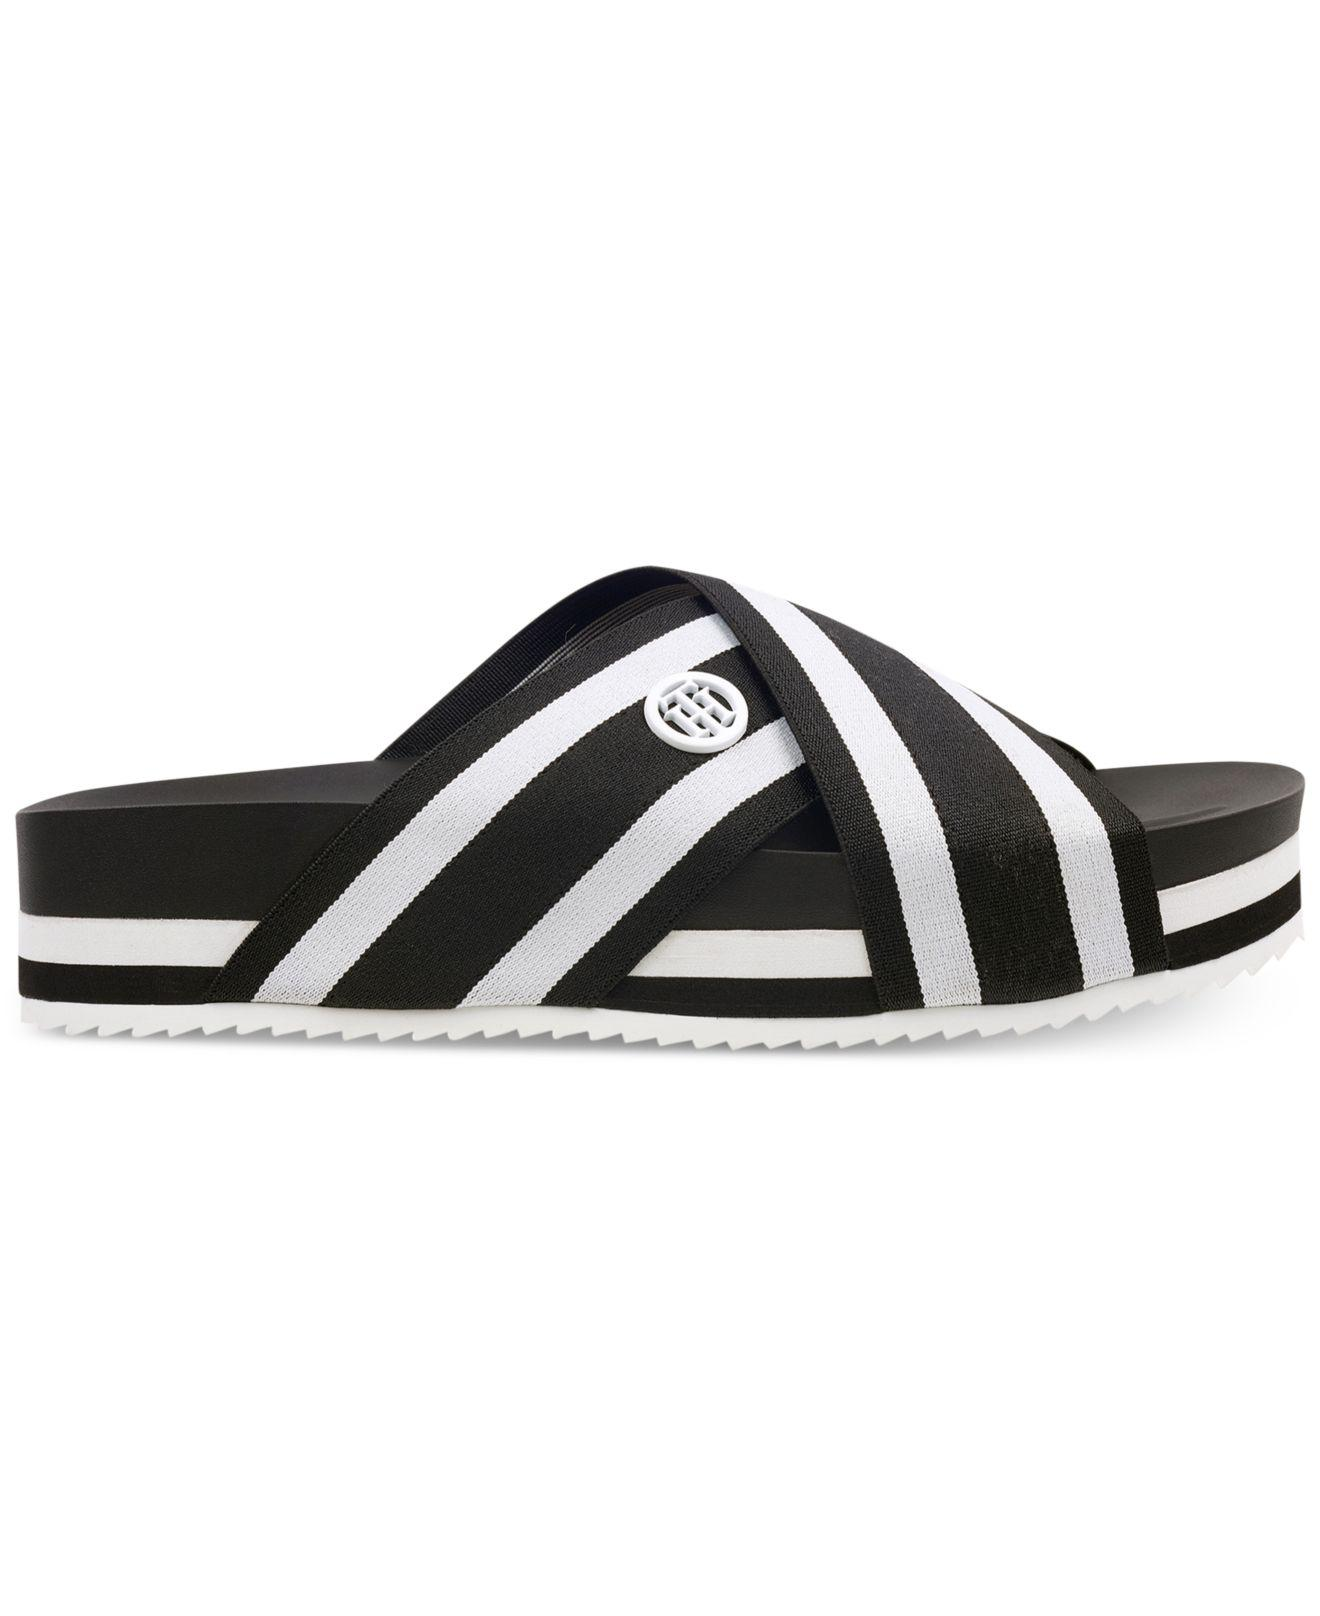 2d439029a Lyst - Tommy Hilfiger Blysse Flatform Sandals in Black